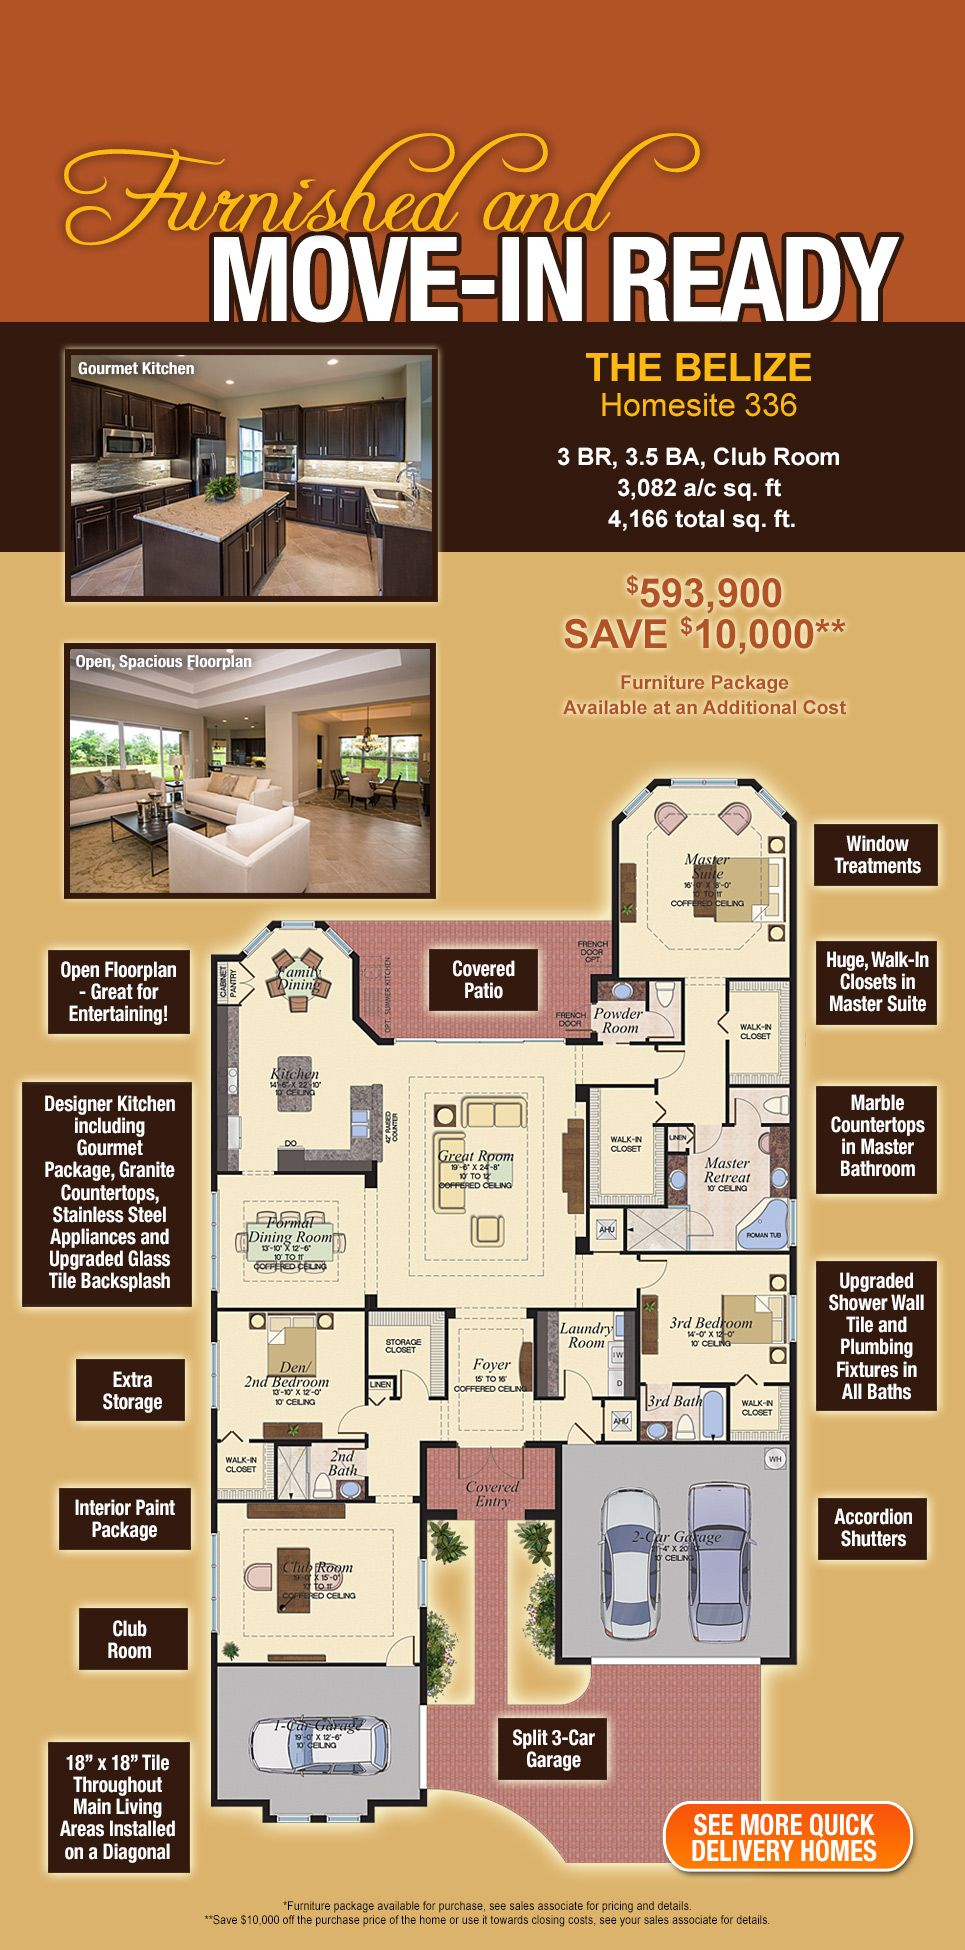 The Belize Model Home At Canyon Trails New Homes In Boynton Beach Florida House Plans Floor Plans Beach House Plans